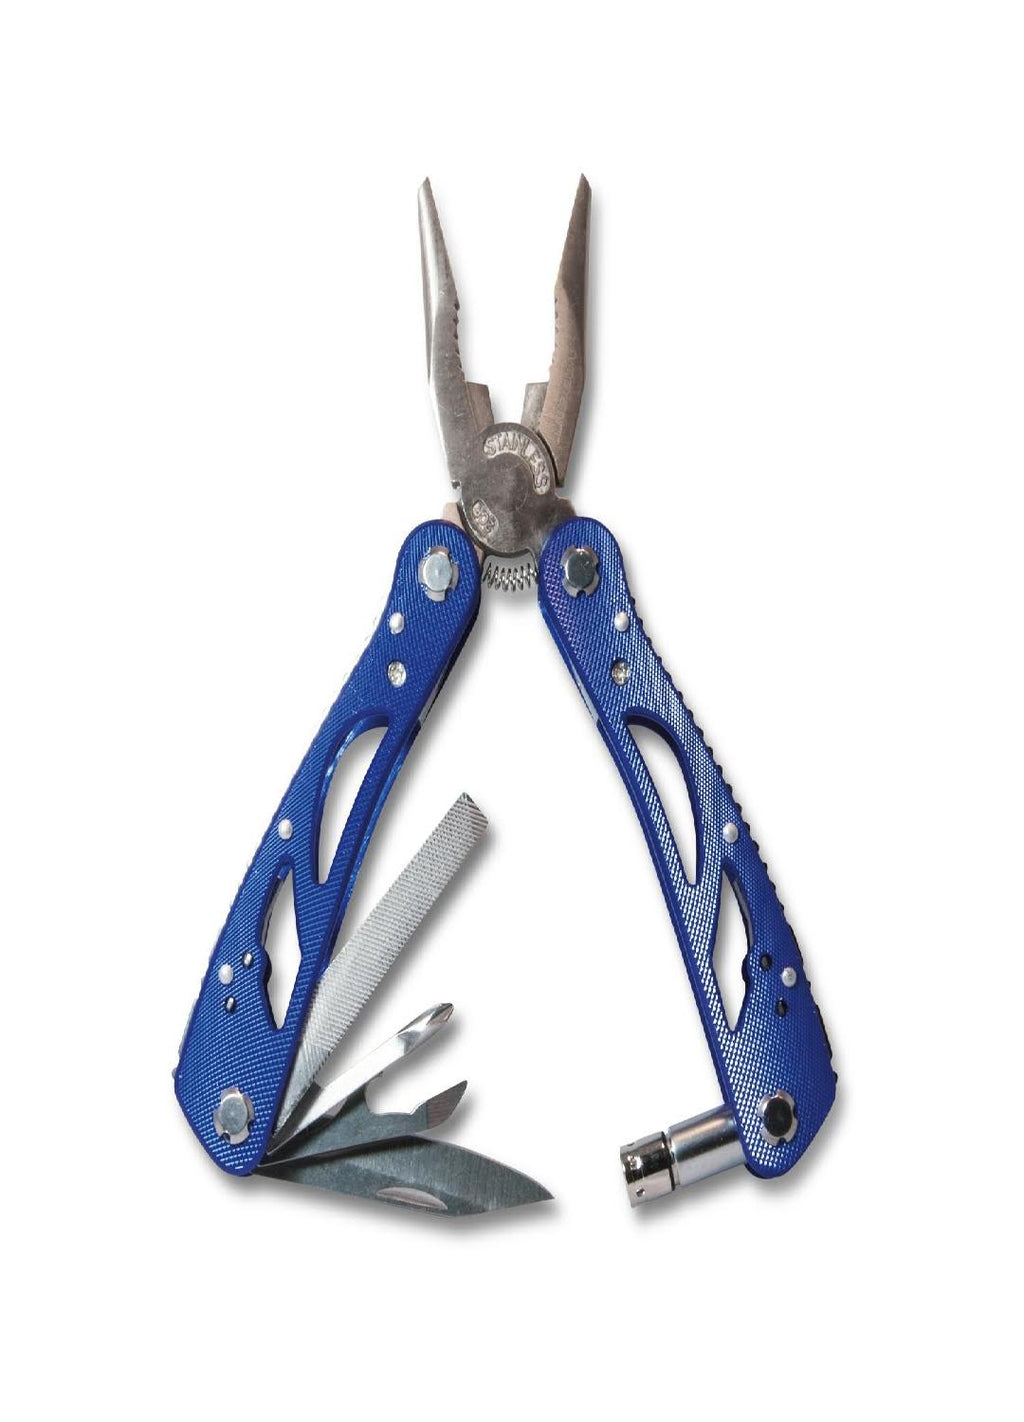 Ardent 6 inch Six Piece Multi Tool